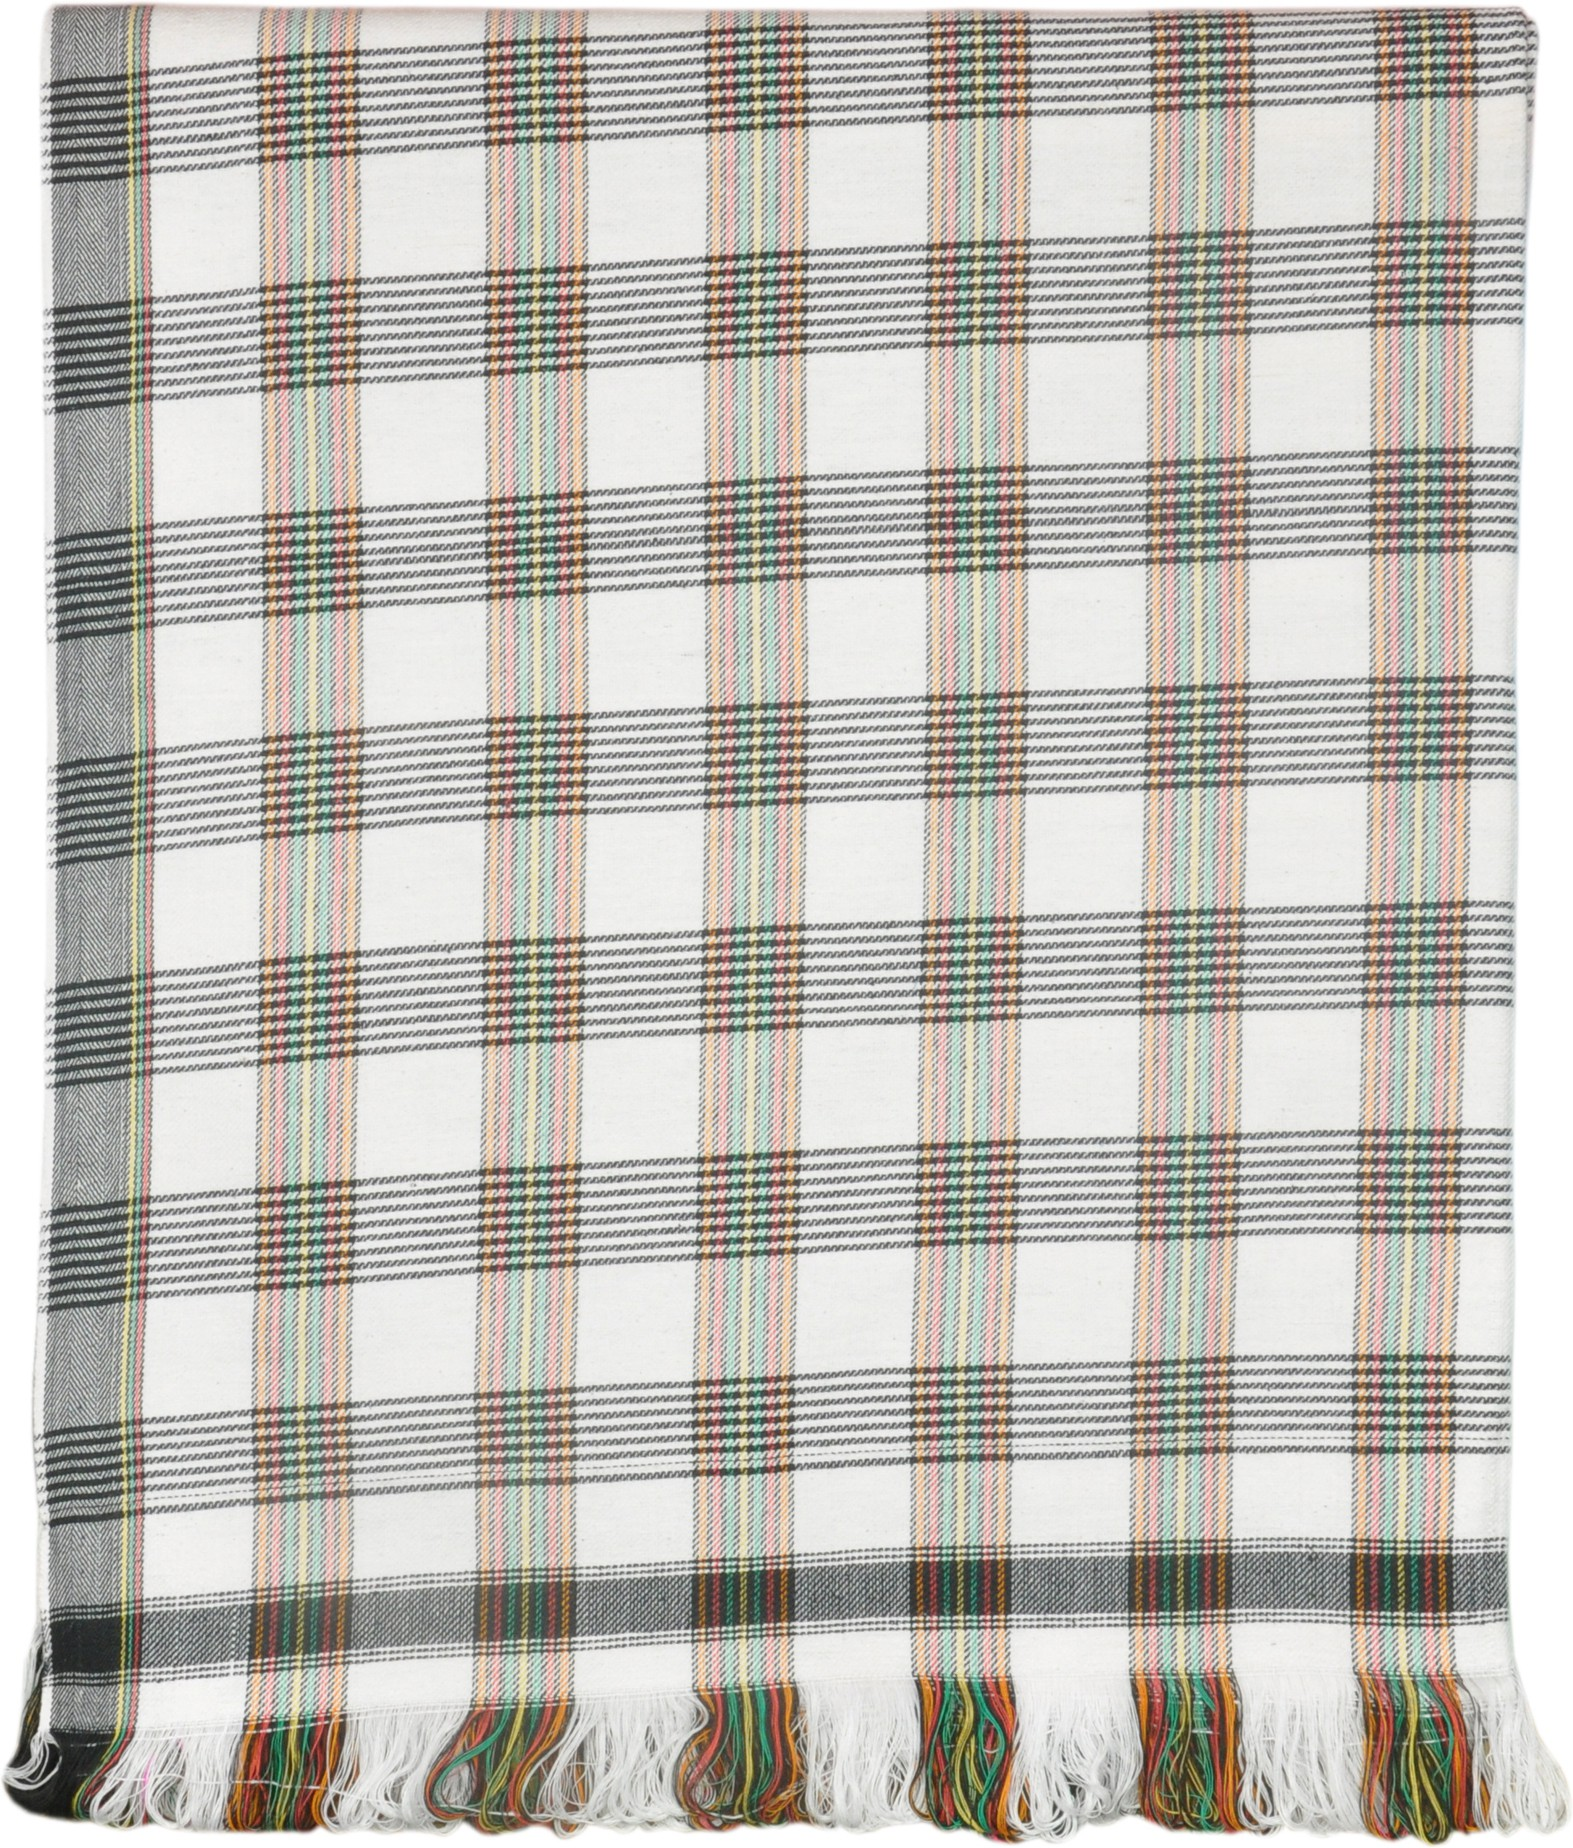 Jass Home Decor Checkered Single Blanket White